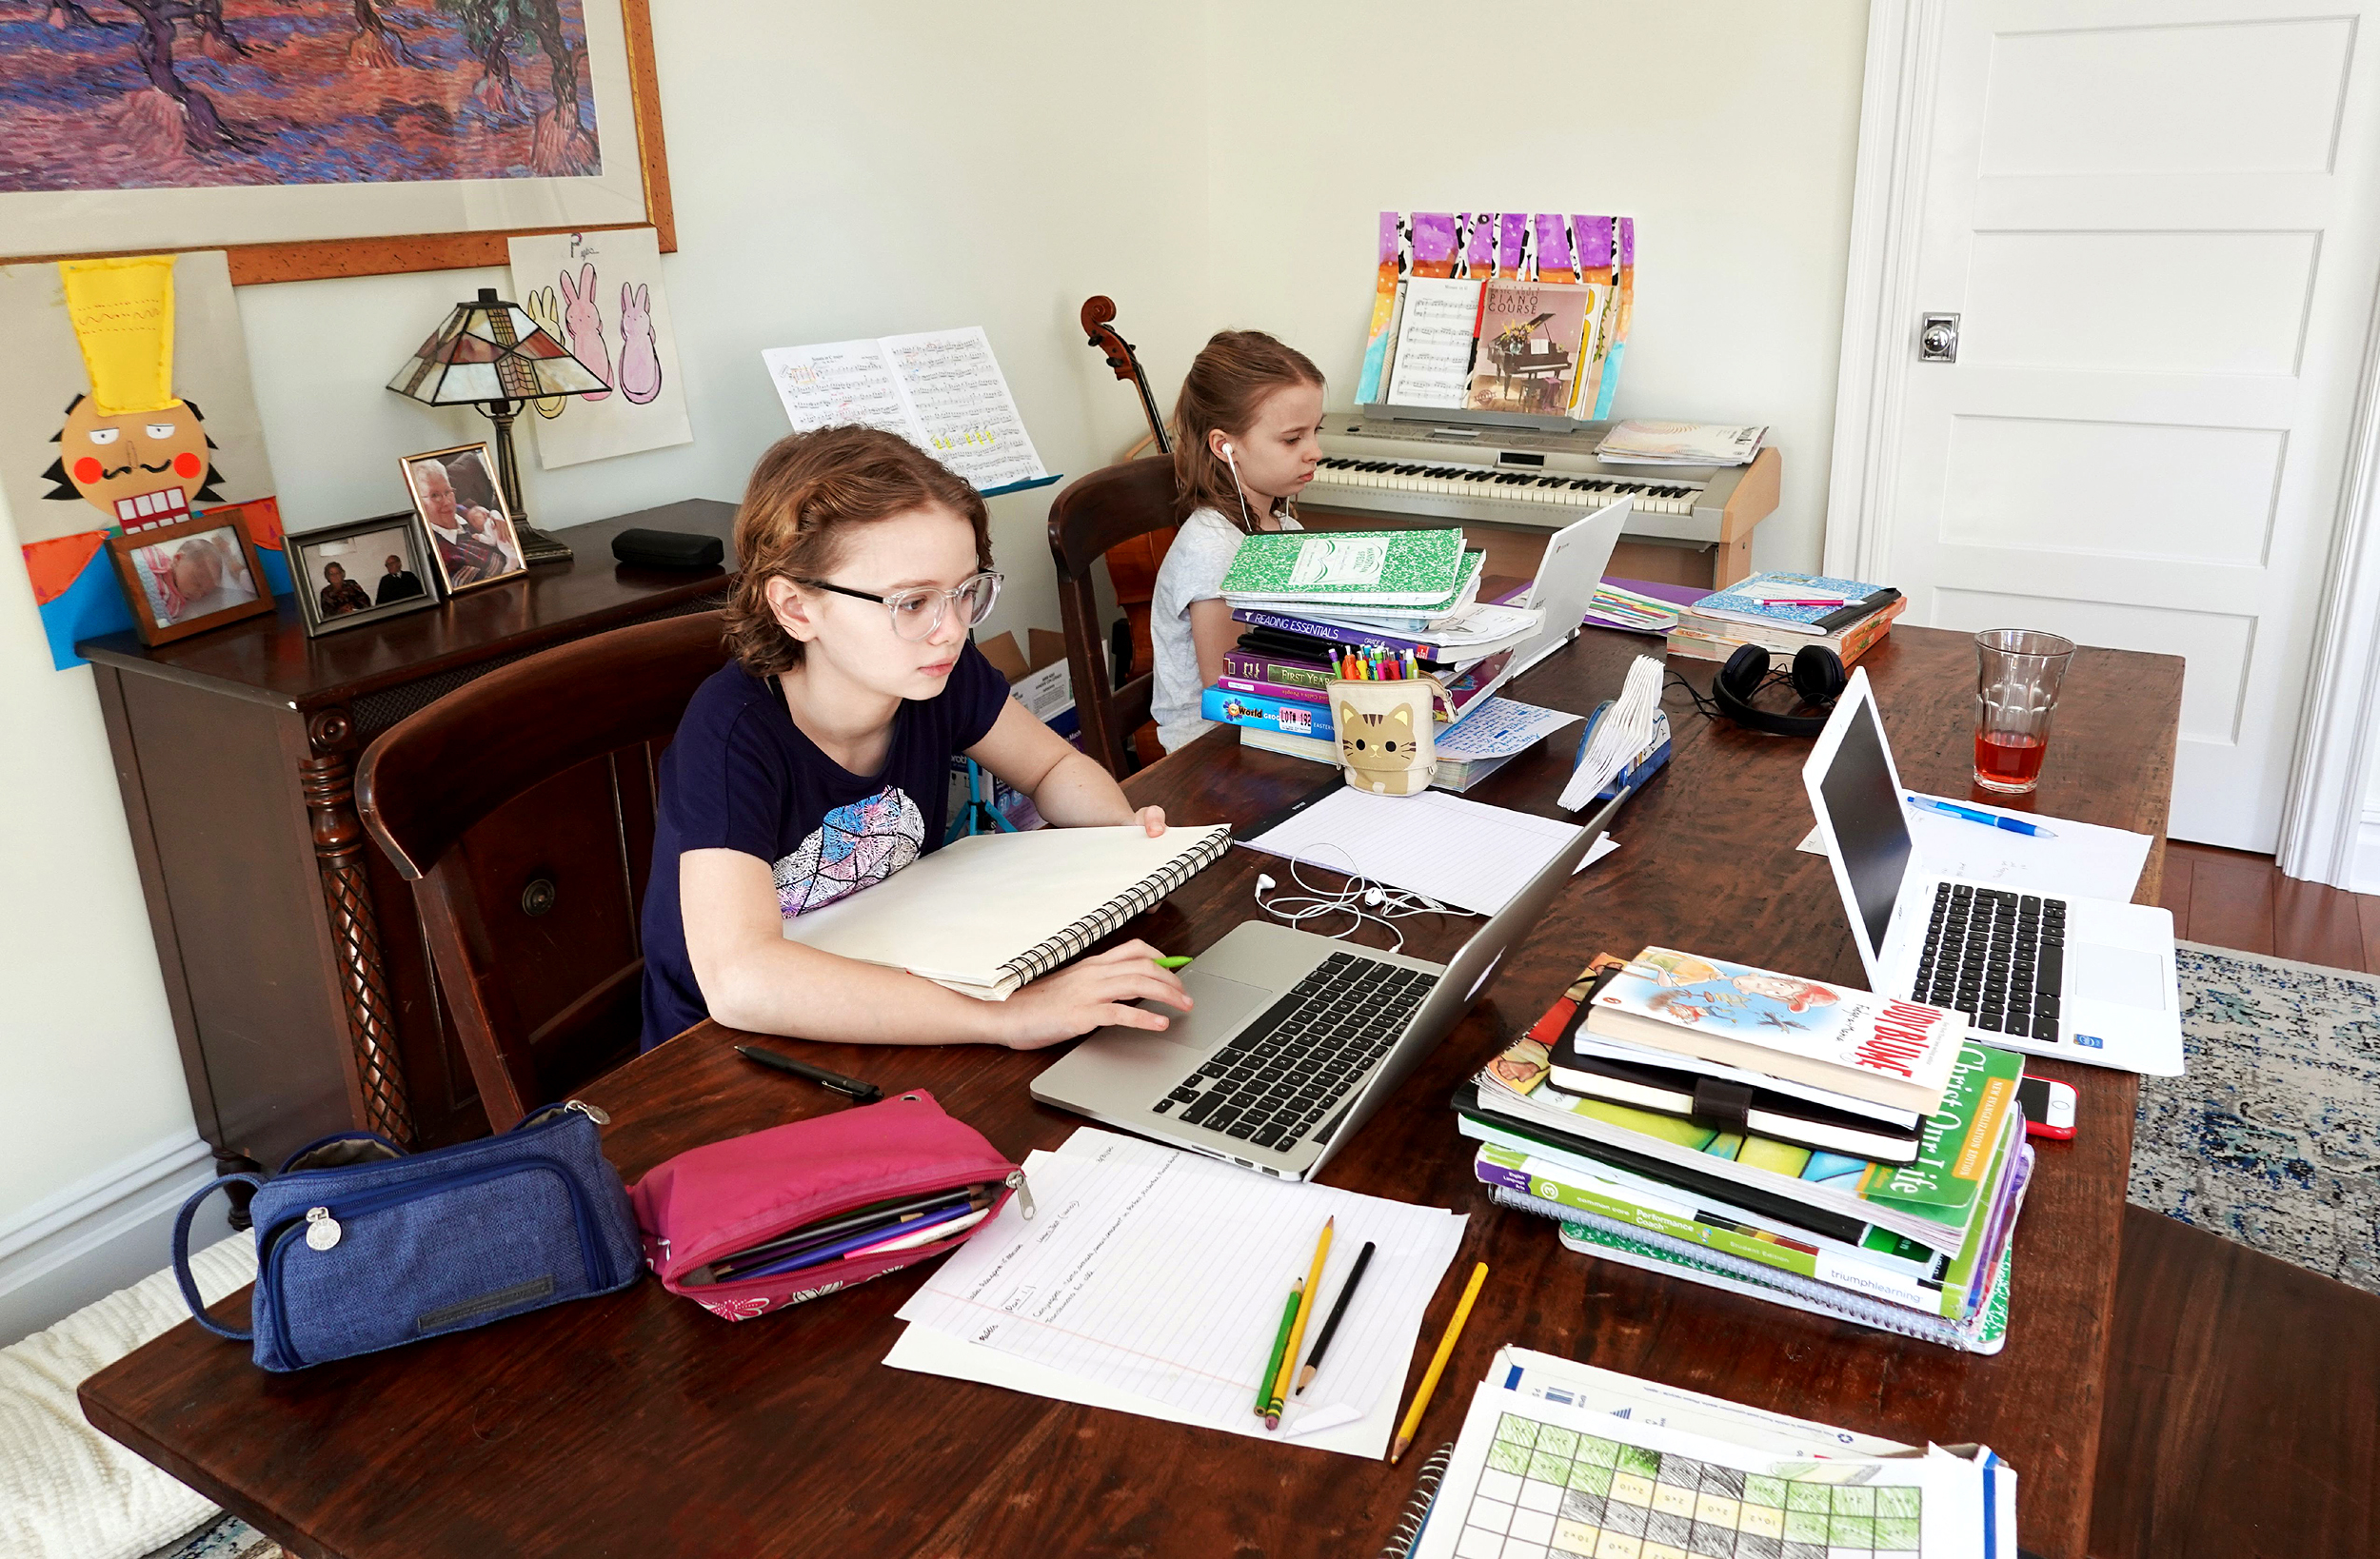 Parents Are Opting To Home School Their Children Because Of Covid 19 But Experts Say It Might Not Be For Everyone